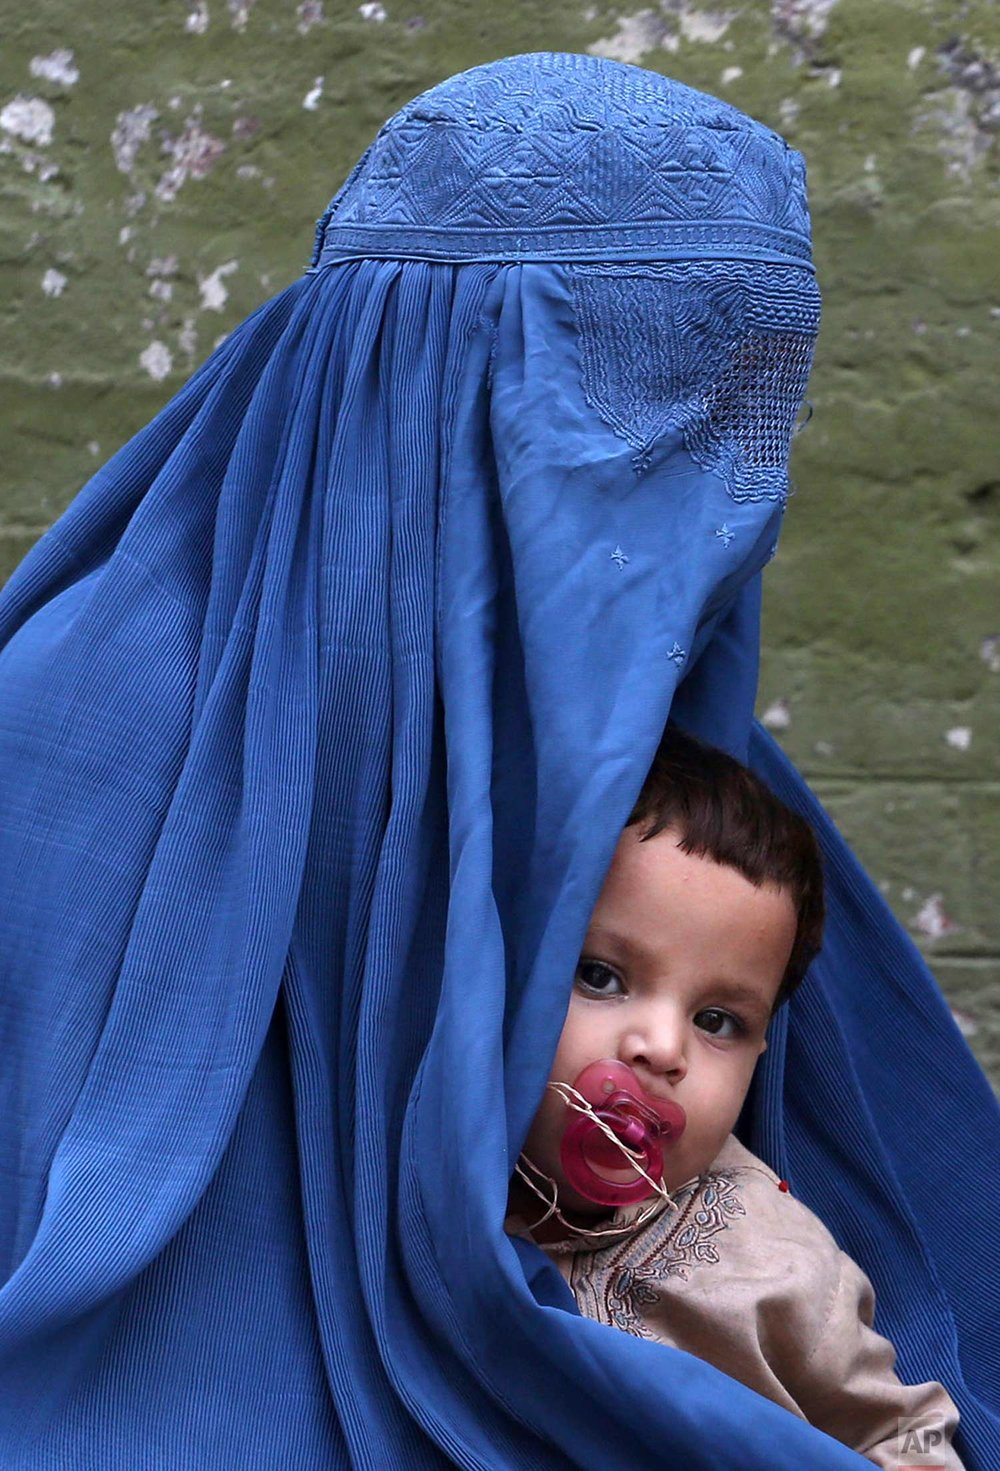 An Afghan refugee mother who fled her country due to war and famine waits with her child, to get registered in Peshawar, Pakistan, Monday. Aug. 21, 2017. (AP Photo/Muhammad Sajjad)